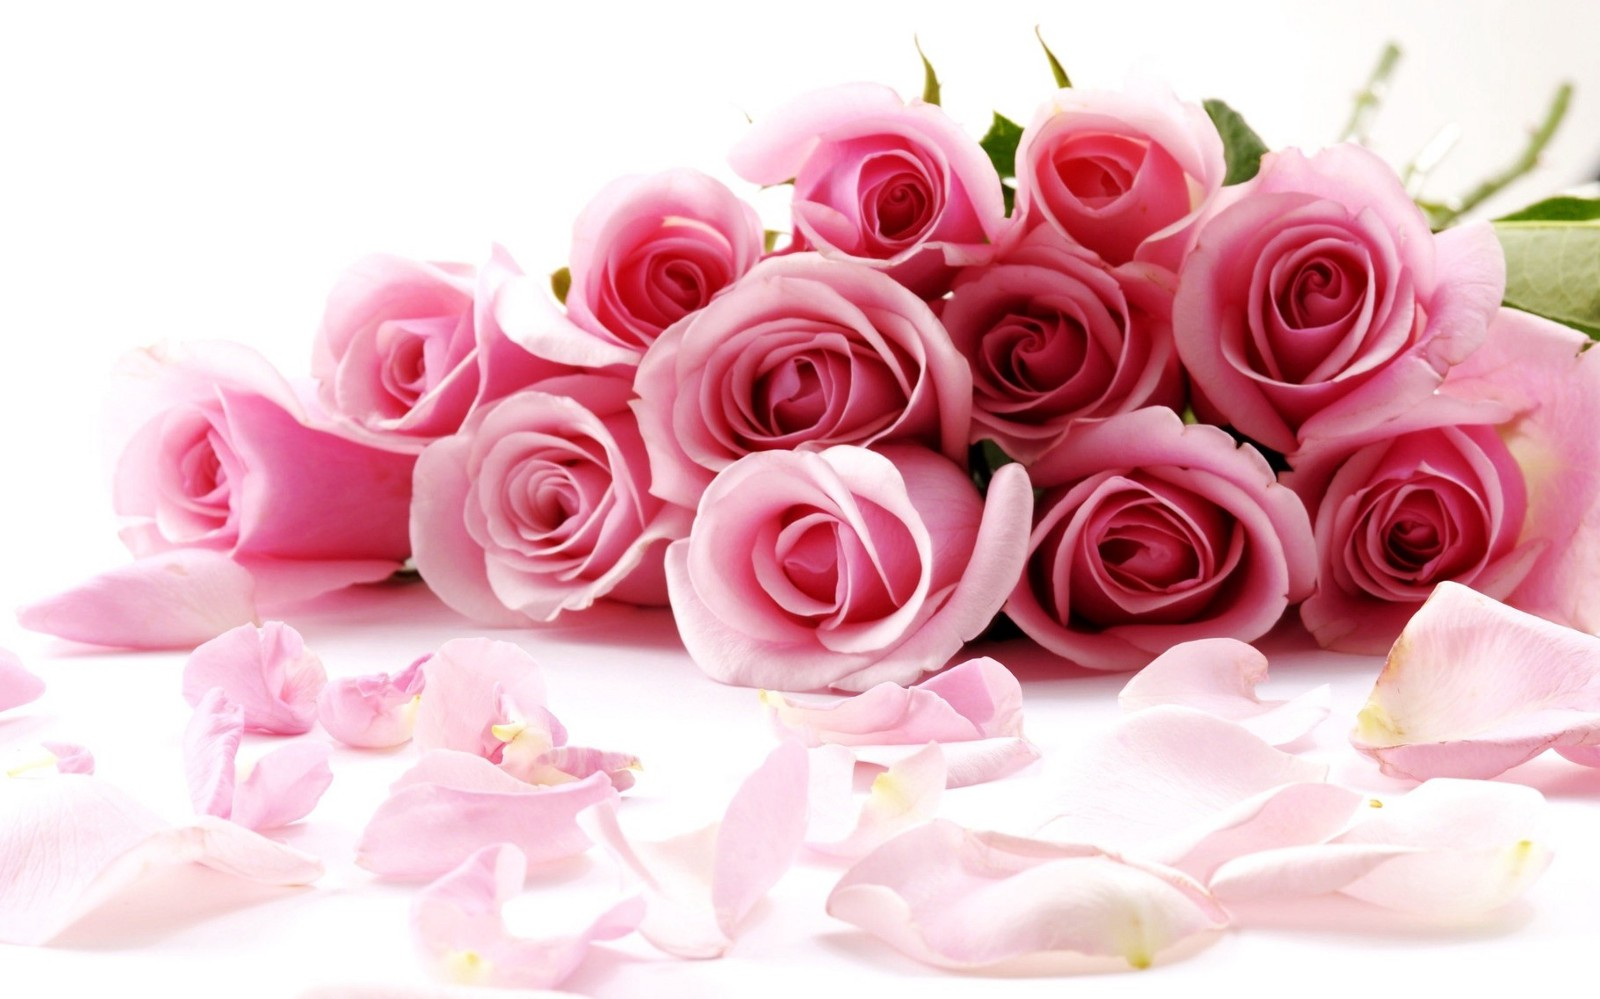 Send Beautiful Flowers To Make Loved Ones Day Special